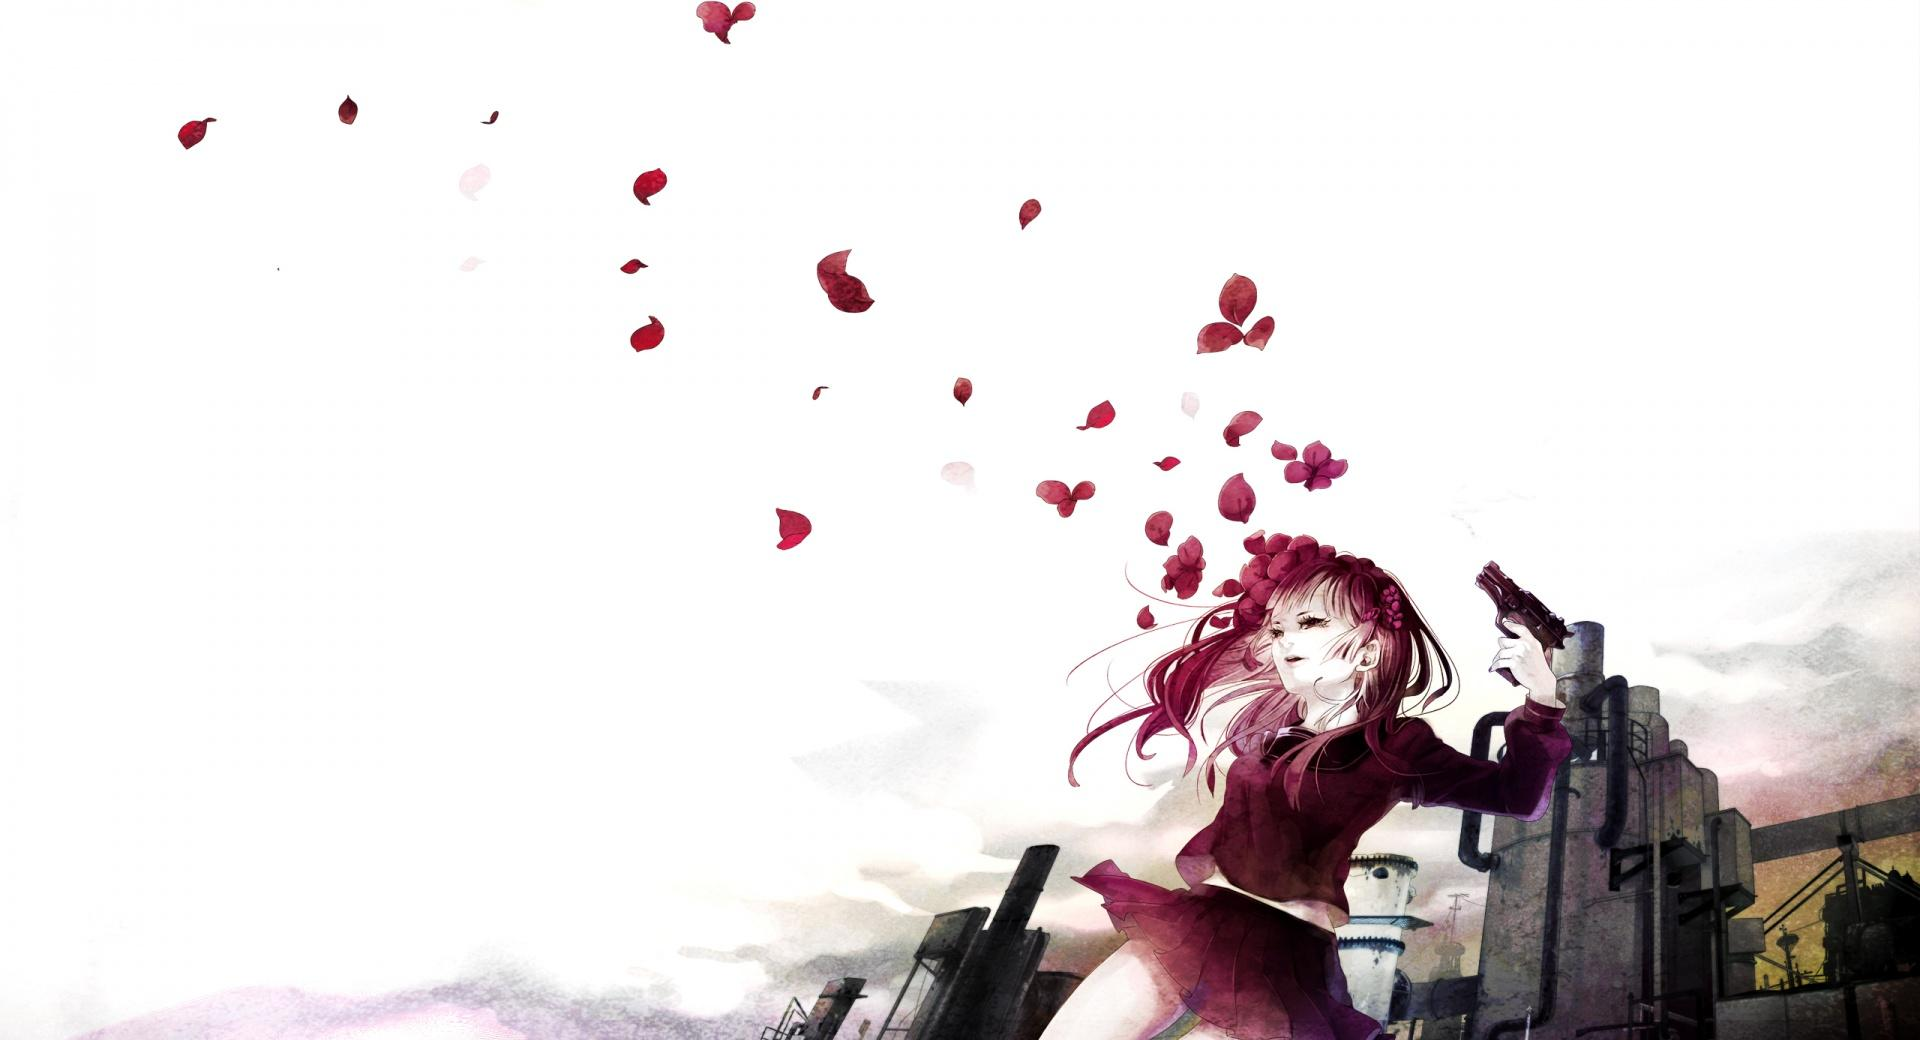 Pistol Petals wallpapers HD quality